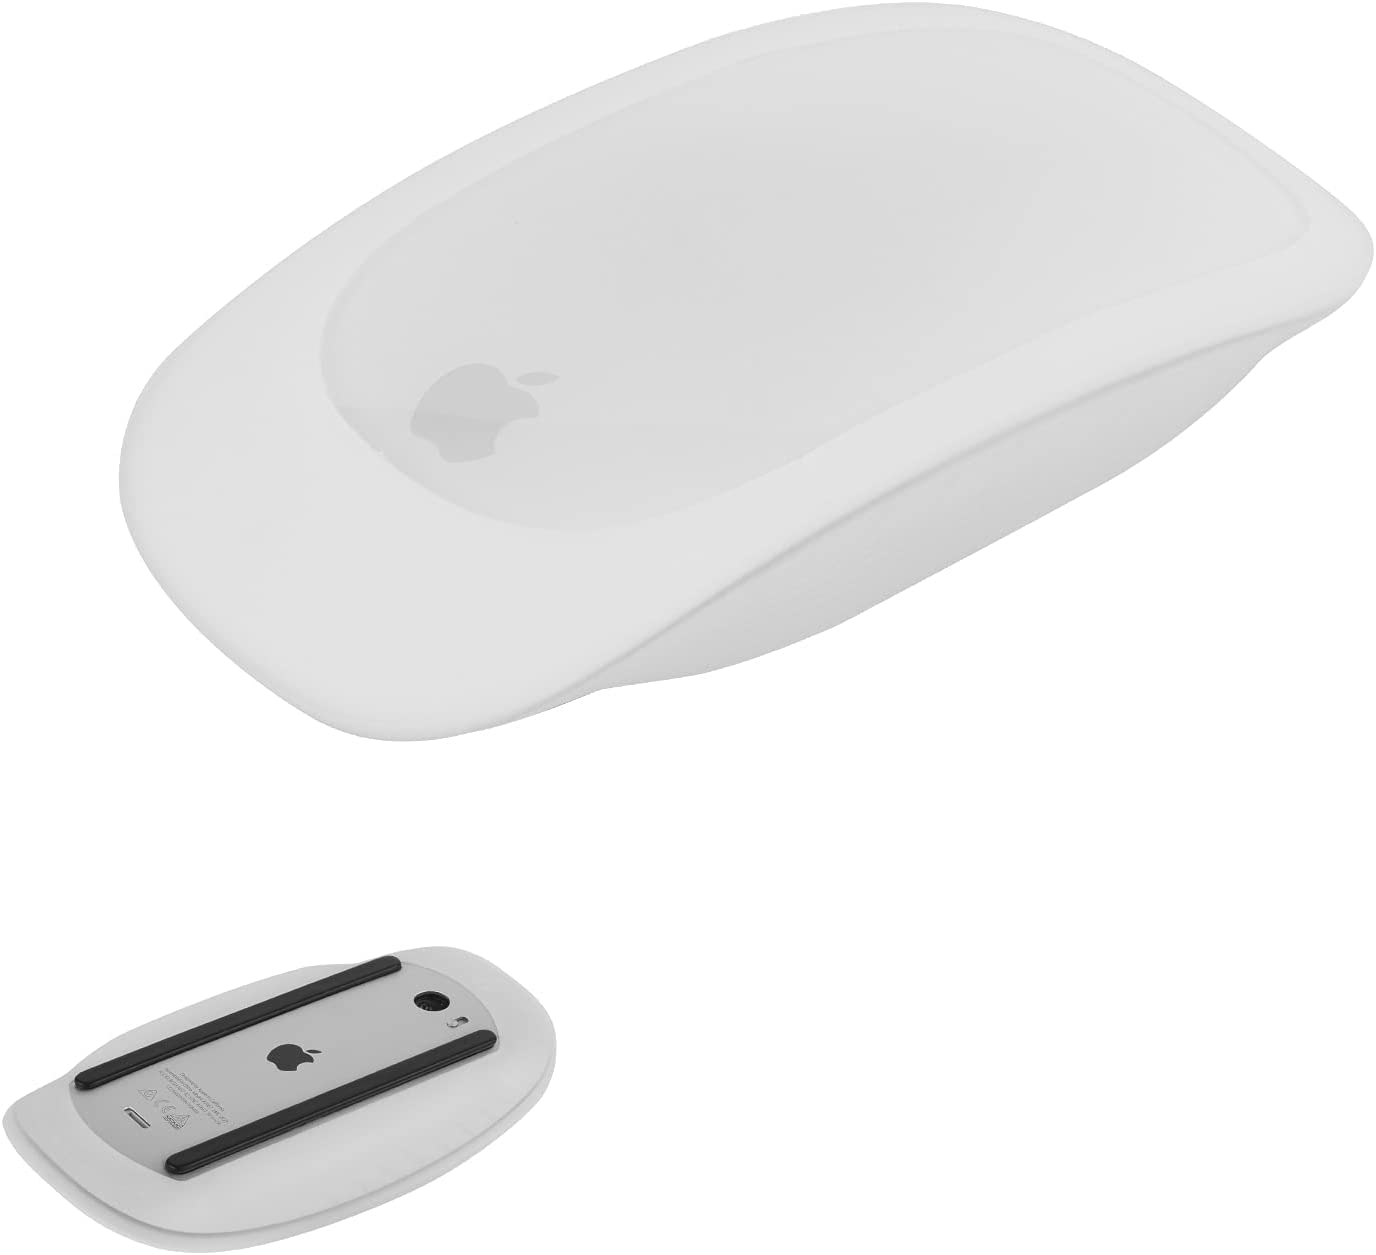 Silicone Case Cover Protective Skin for Apple Magic Mouse 1 & 2 Silicone Sleeve Compatible with Apple Magic Mouse iPad Mouse (White)